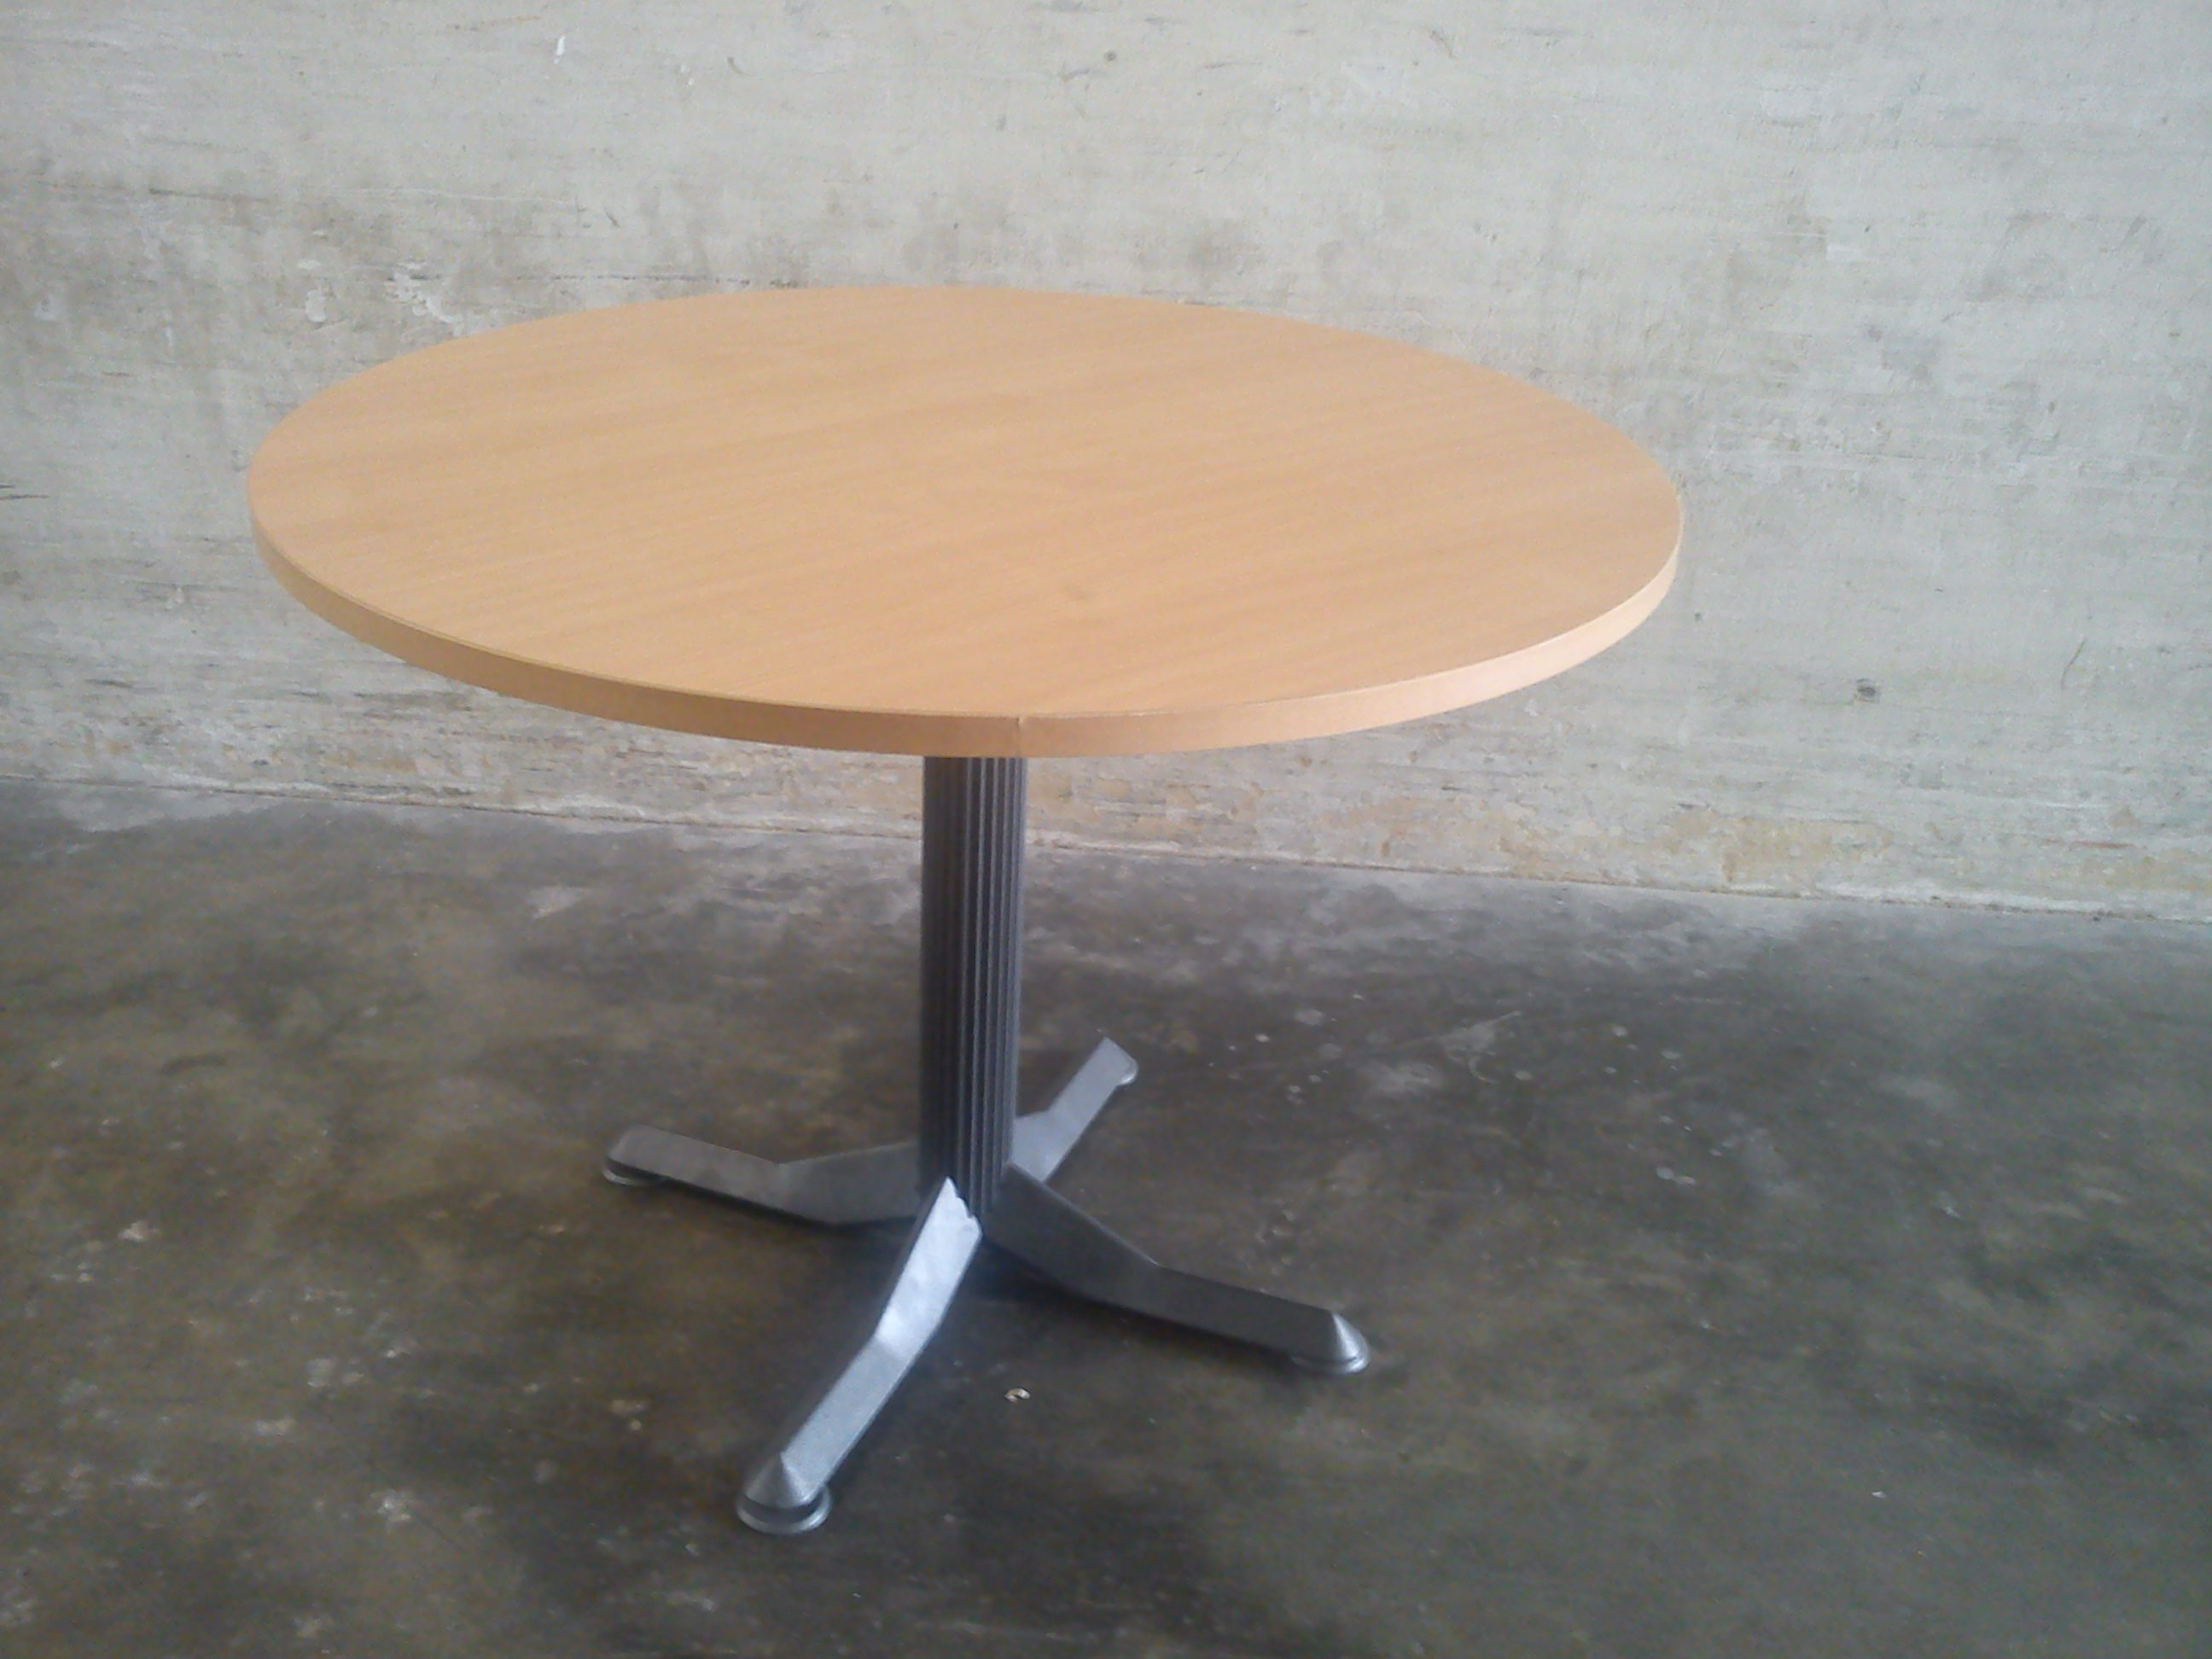 FOR SALE: Round Glass Table, 3ft diameter, with metal stand, Granite top 4ft dia